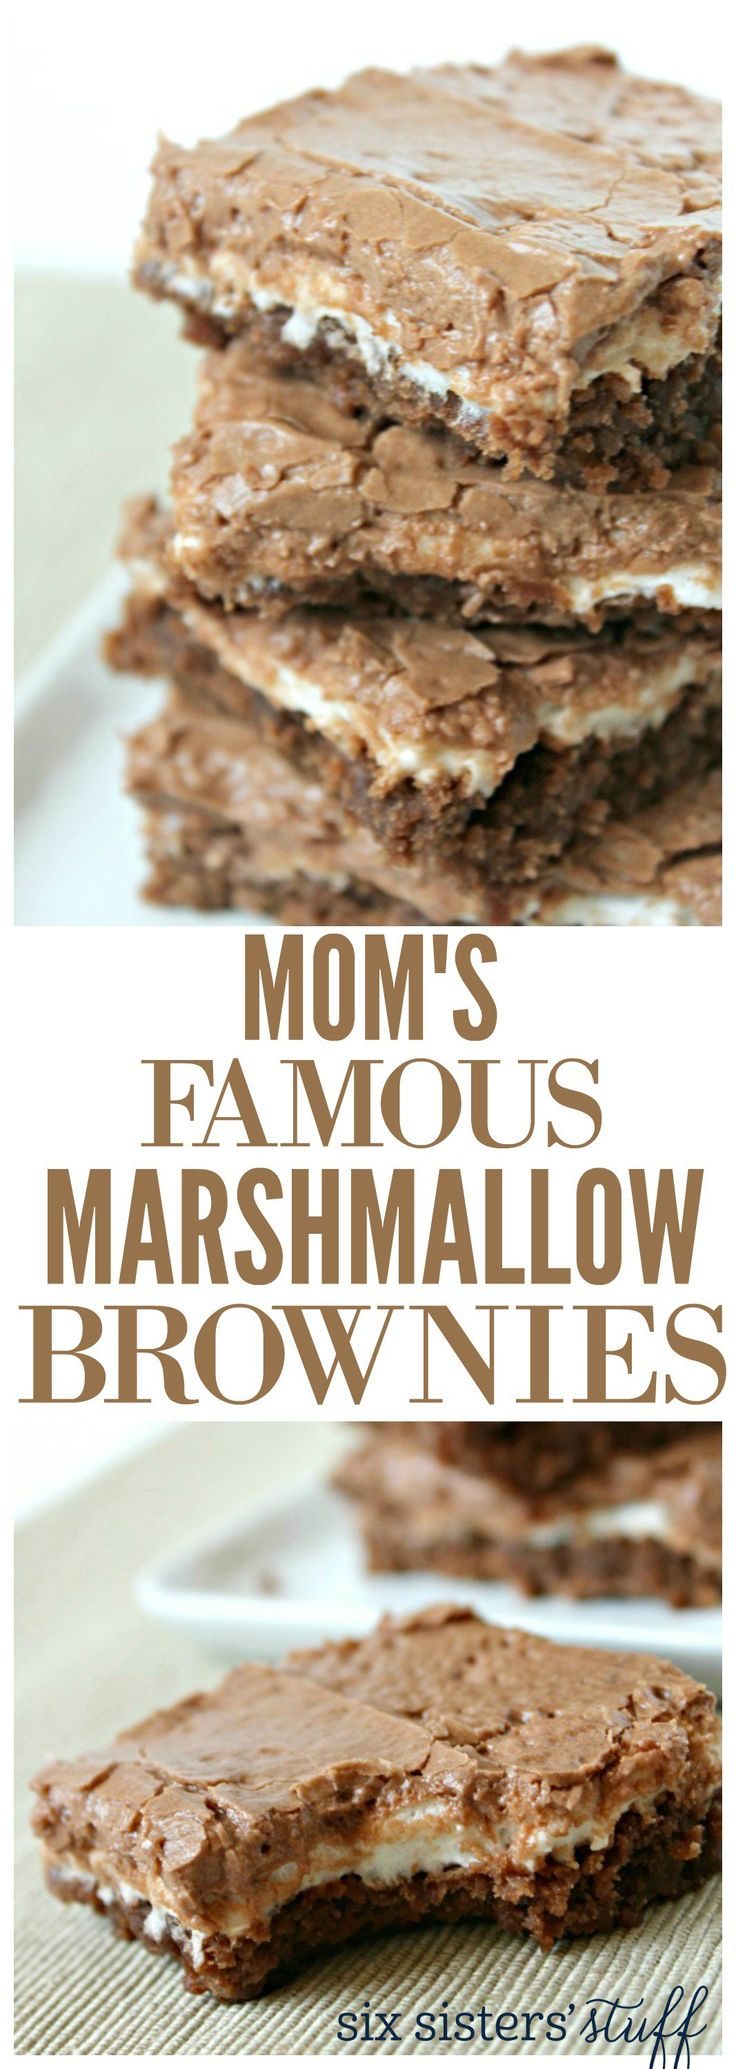 Mom's Famous Marshmallow Brownies - Our mom gets asked to bring these brownies to every single social gathering! This is one of the best desserts!